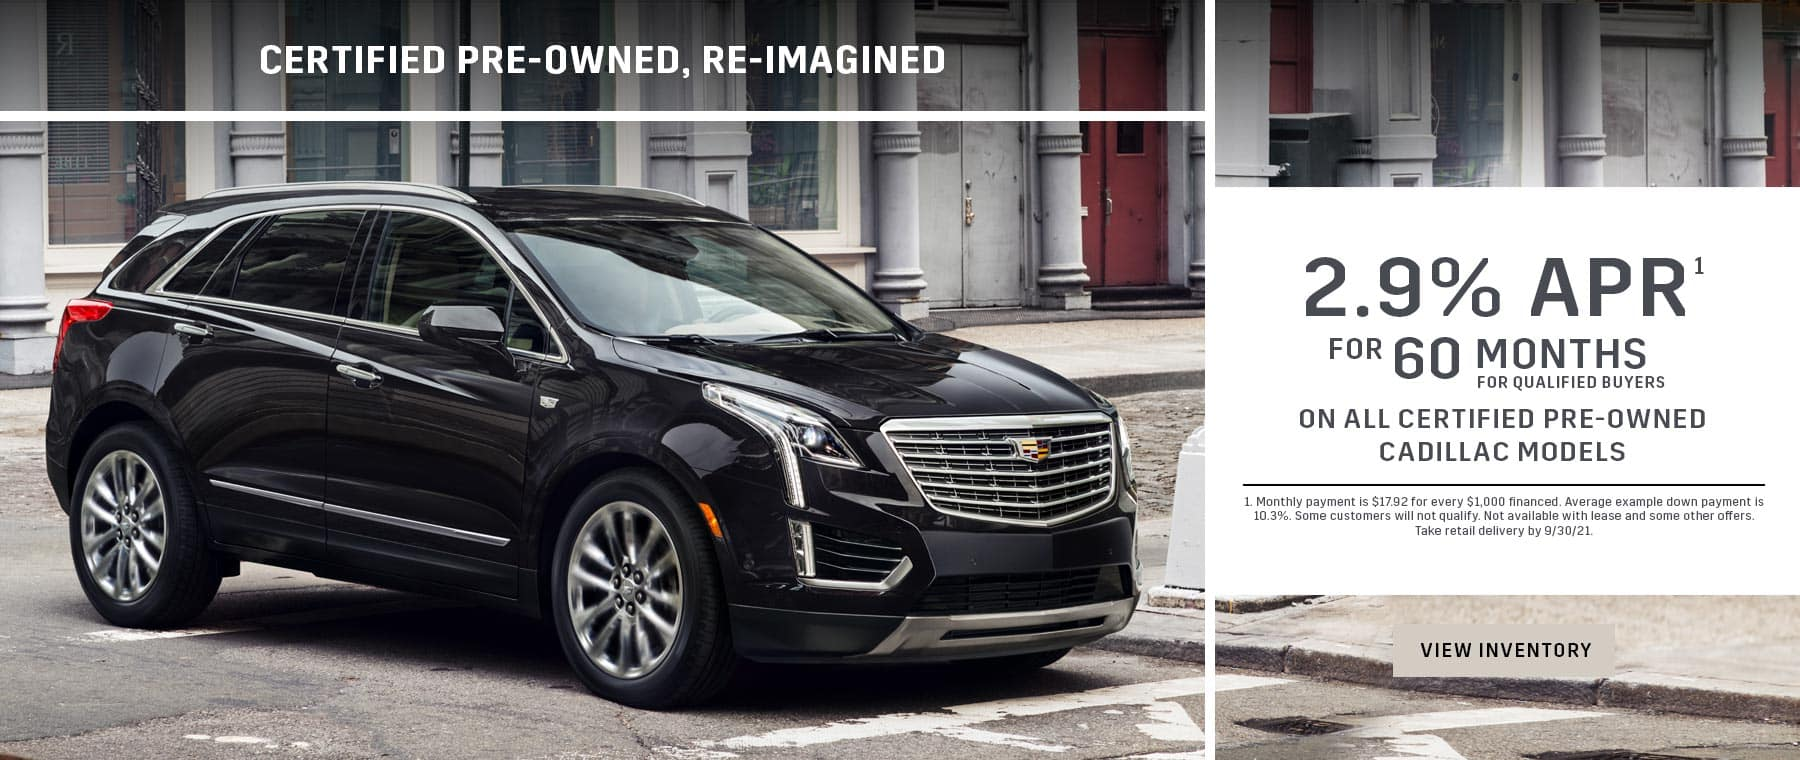 black Certified Pre-Owned Cadillac on a street 2.9% for 60 months